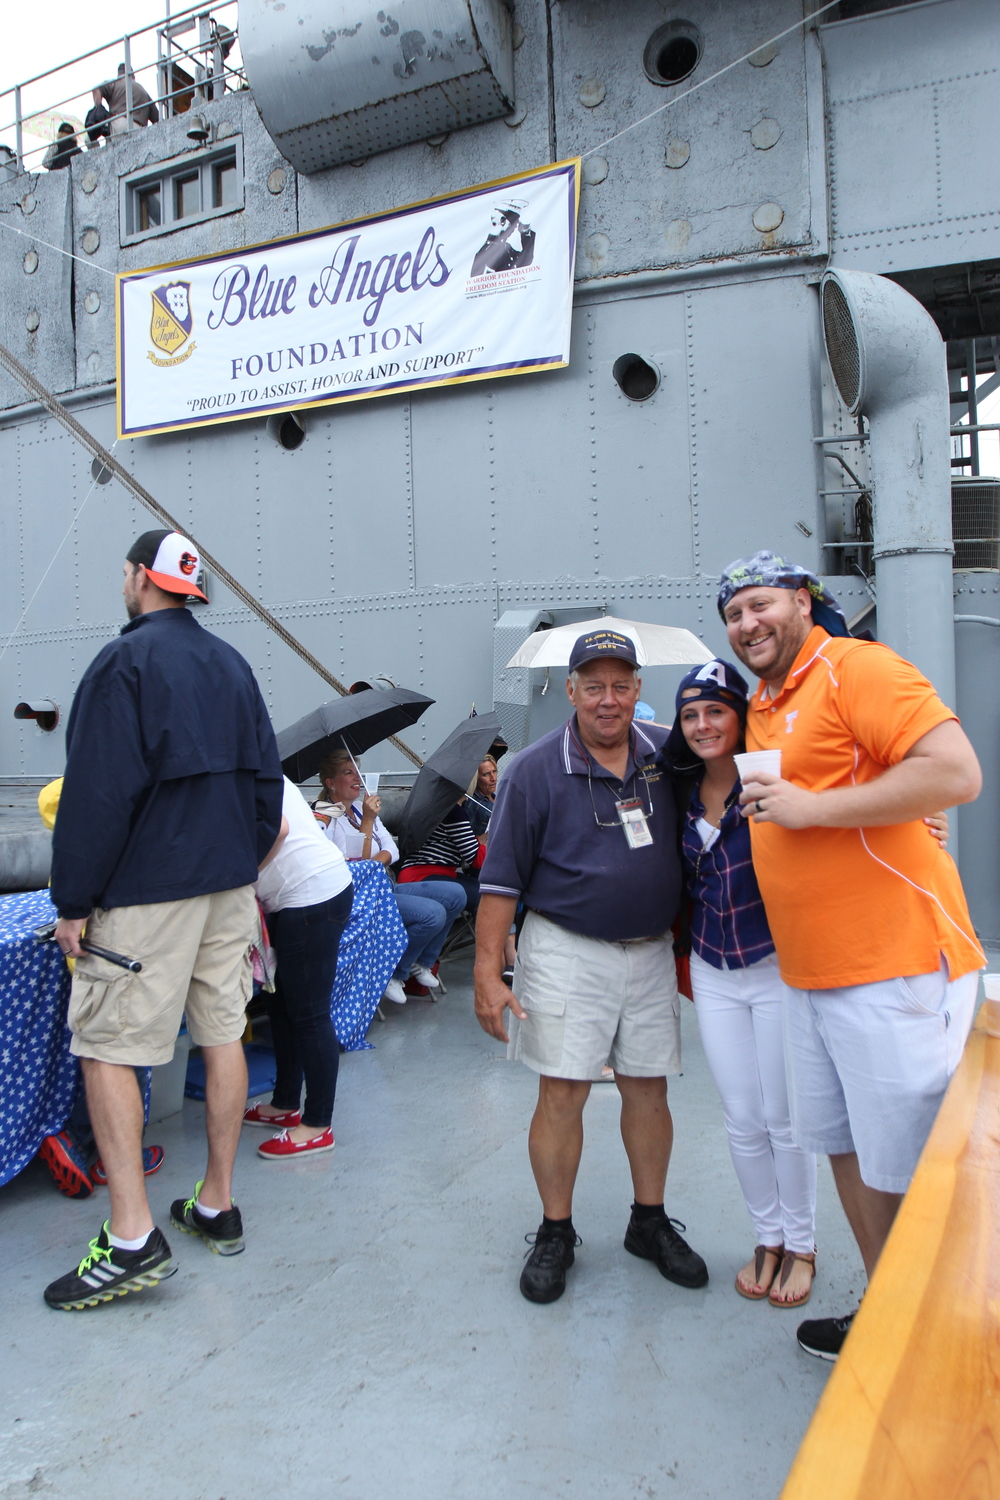 Blue Angels Foundation....  They chartered the ship to view the Blue Angel Airshow during Sailabration 2014.